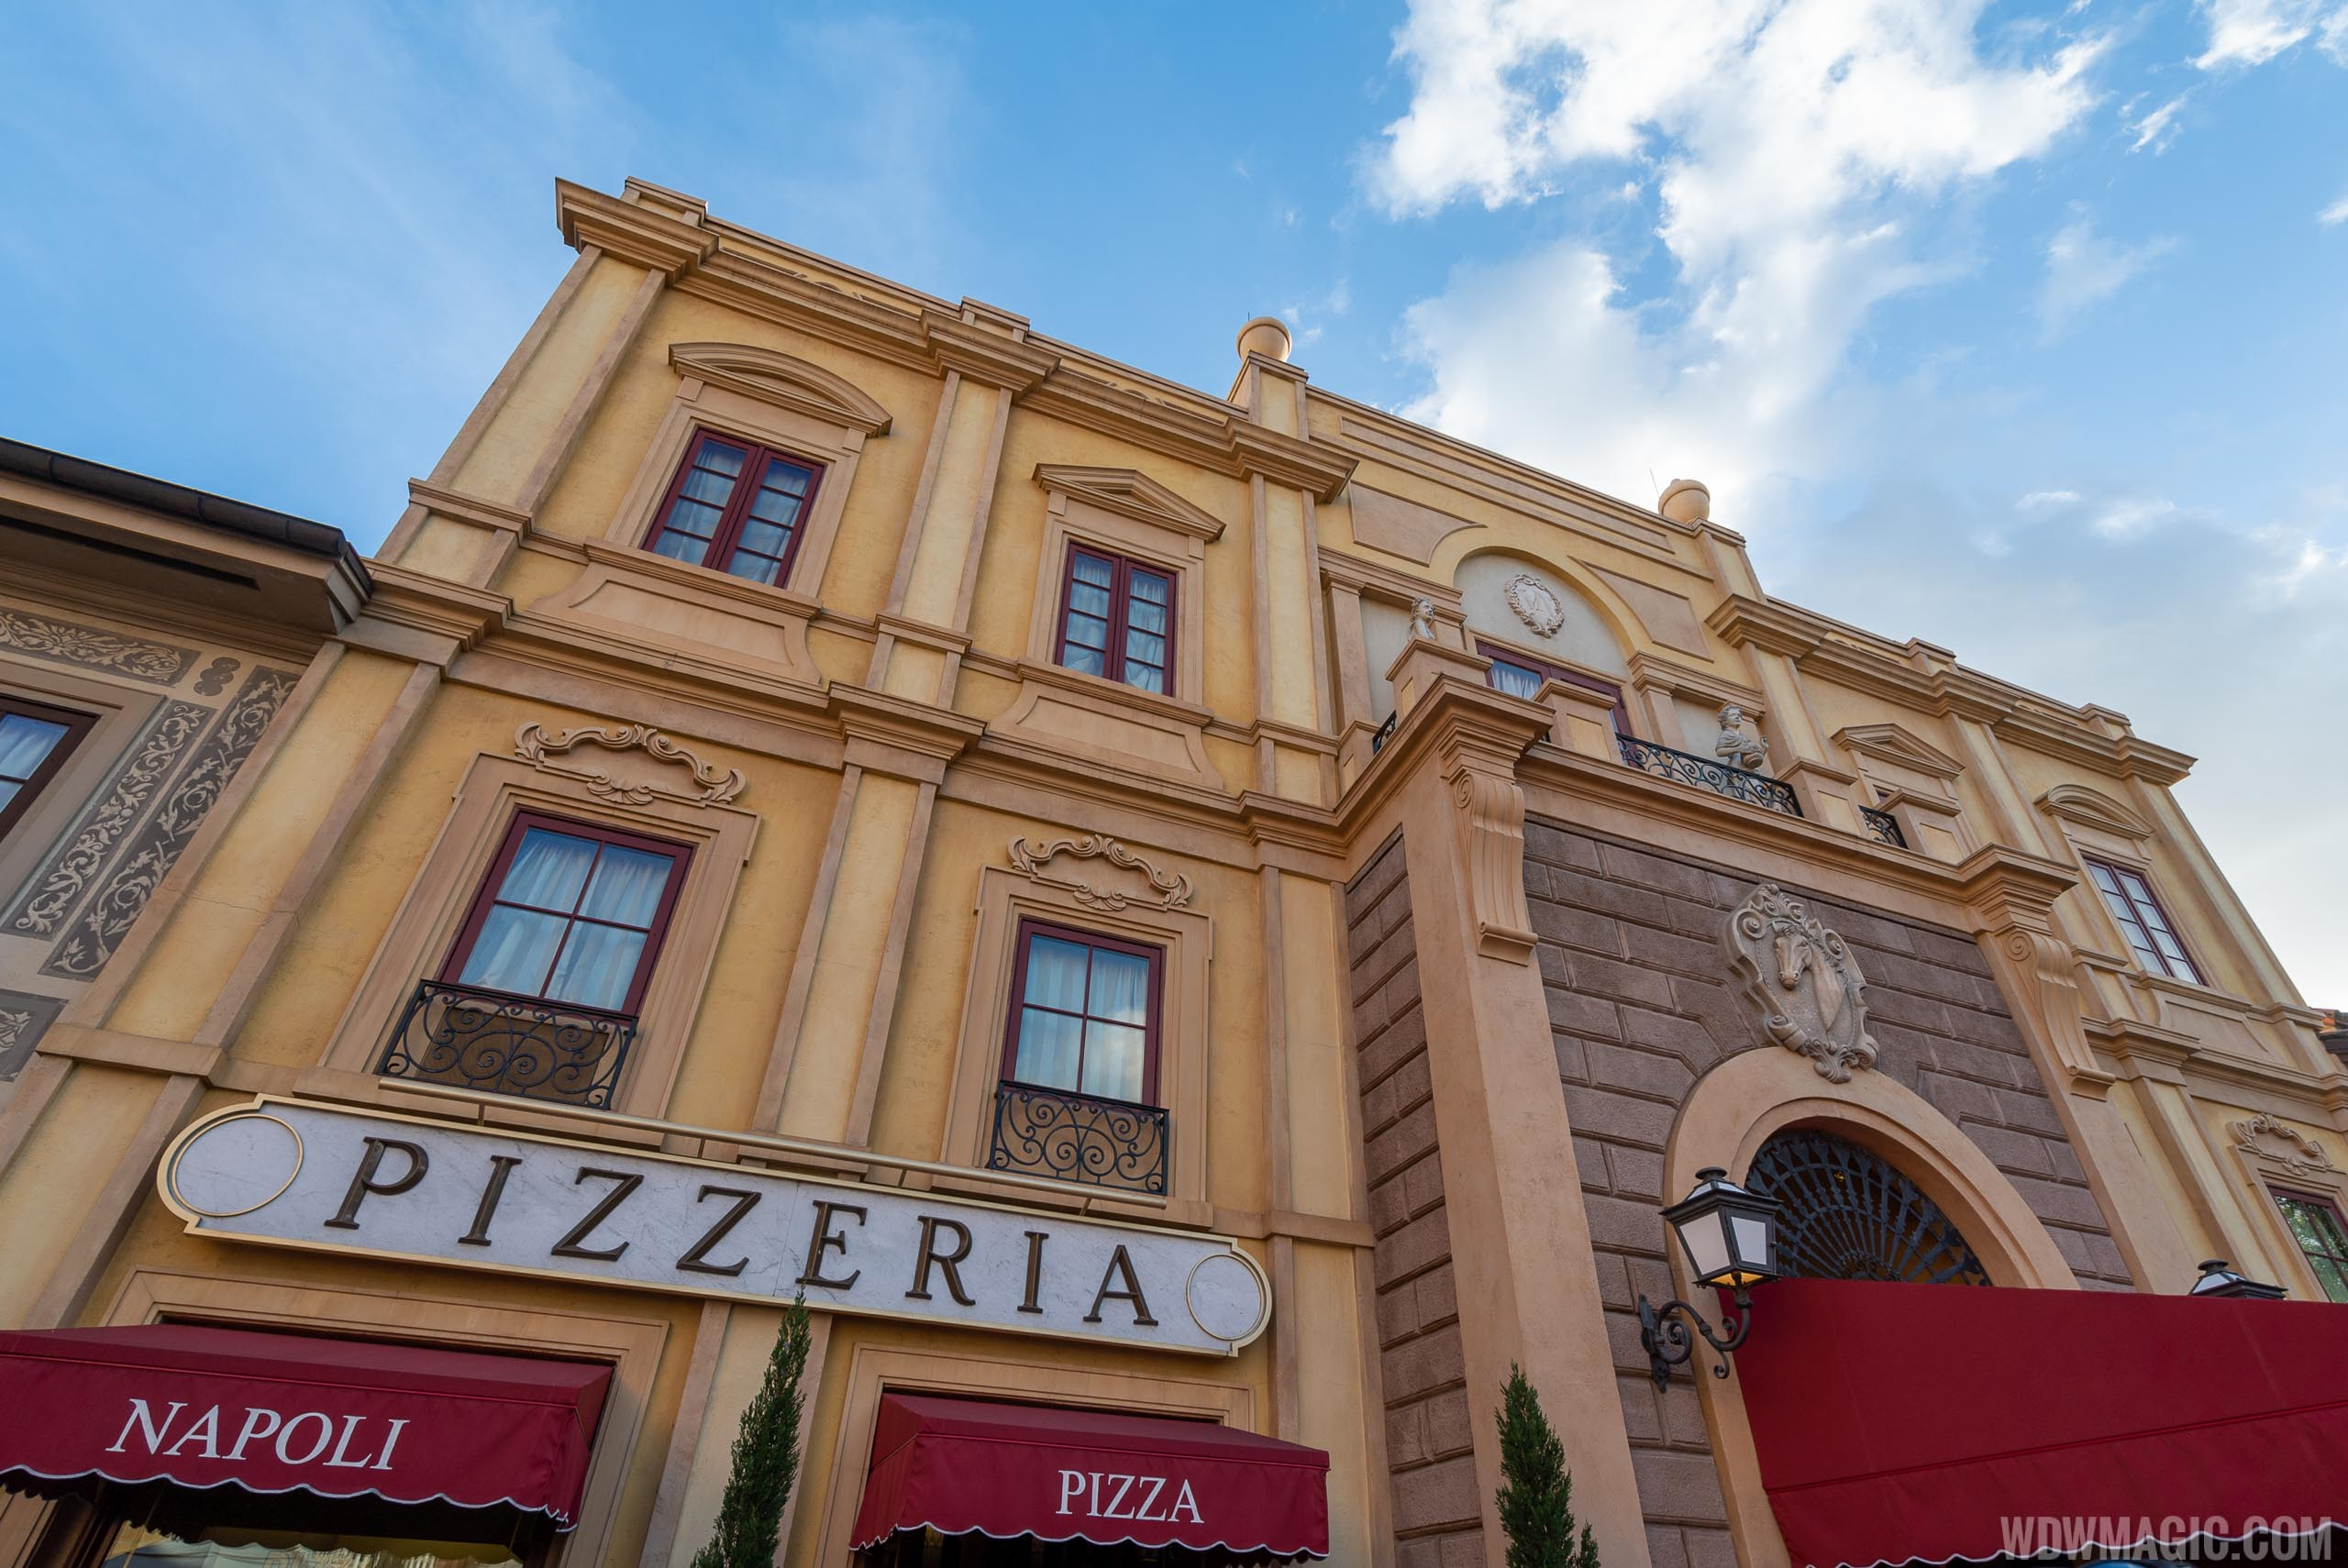 Via Napoli is one of the Patina Restaurant Group's restaurants at EPCOT